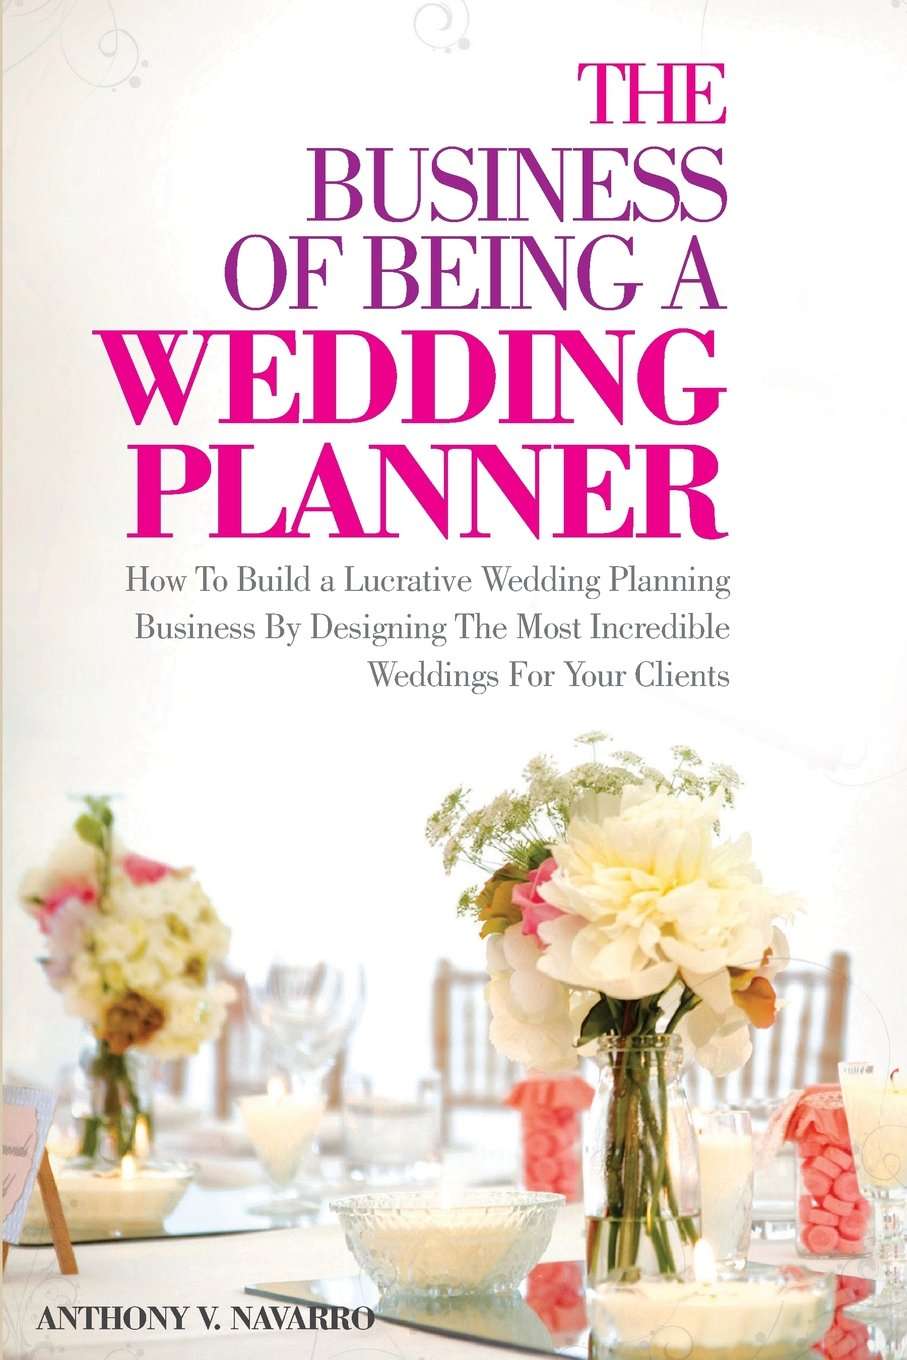 The Business of Being a Wedding Planner: How to Build a Lucrative